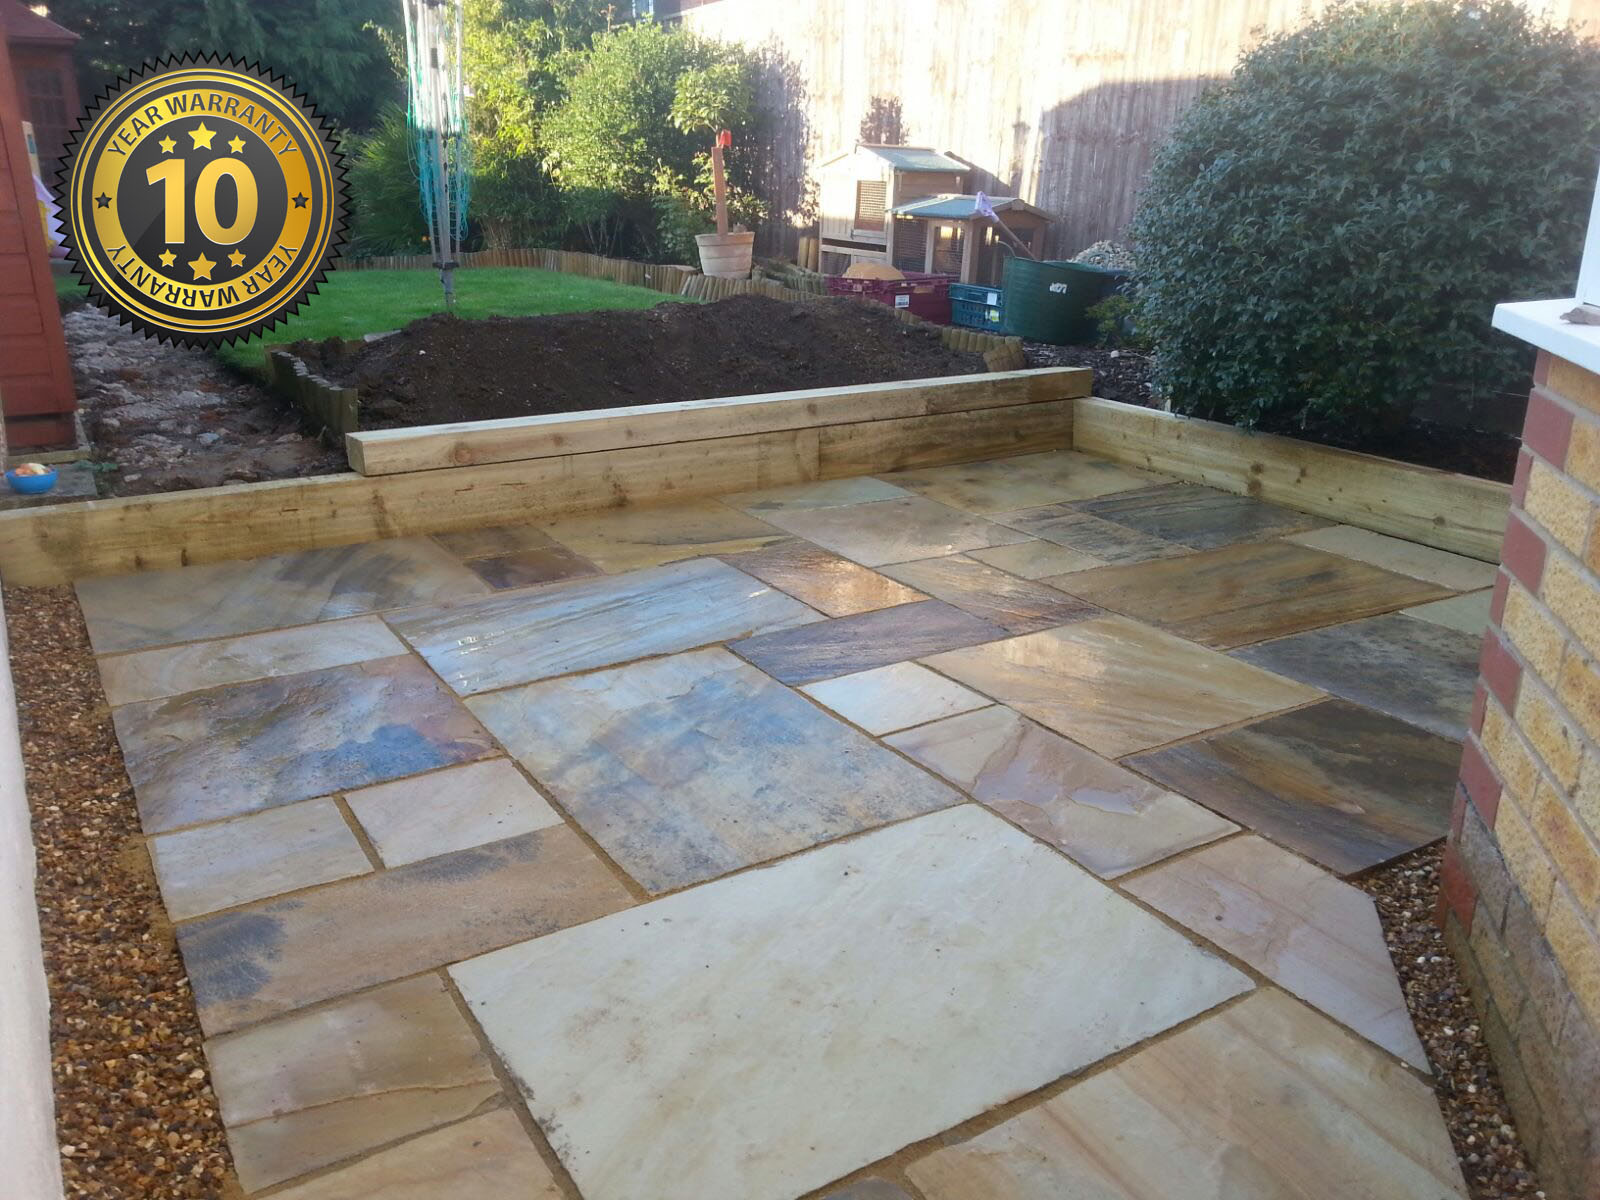 New Patio in Abingdon, New Driveways Oxford New Driveways Reading New Driveways Swindon New Driveways Newbury New Driveways Peterborough New Driveways Cardiff New Driveways North London New Driveways South London New Driveways Chiswick New Driveway High Wycombe